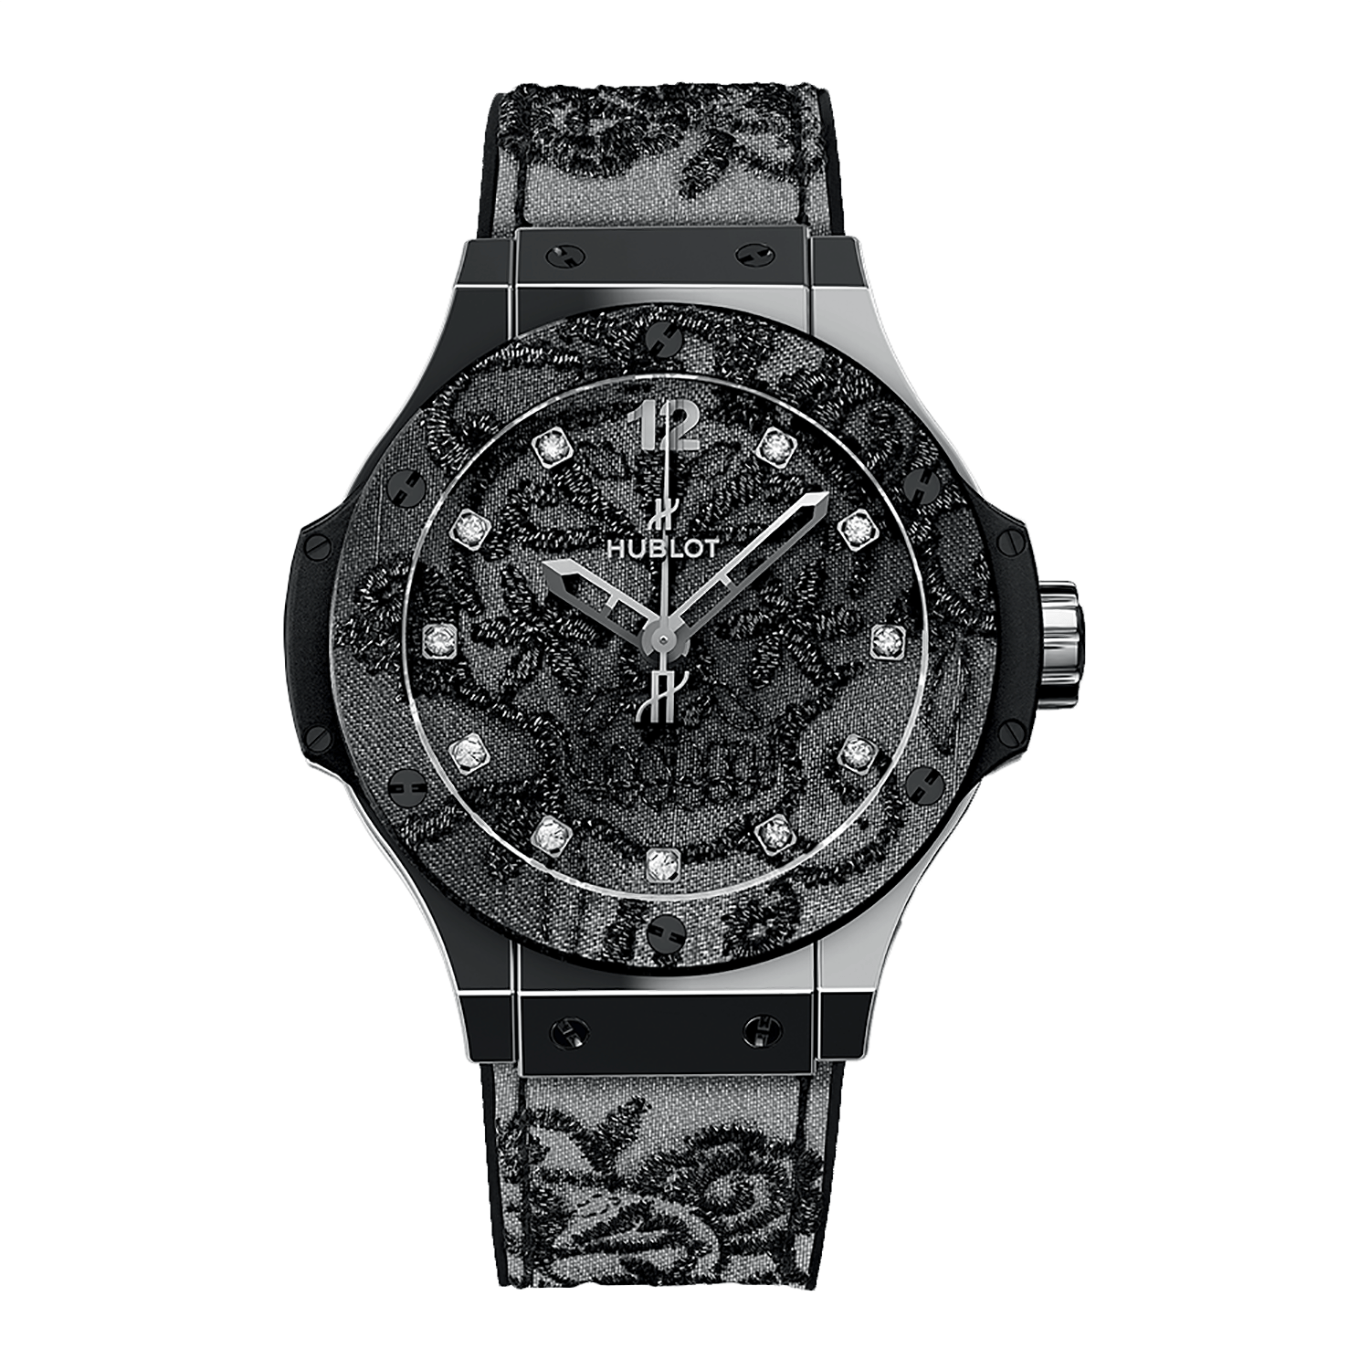 Hublot Uhr Schwarz Hublot Big Bang Broderie Sexy And Glamourous